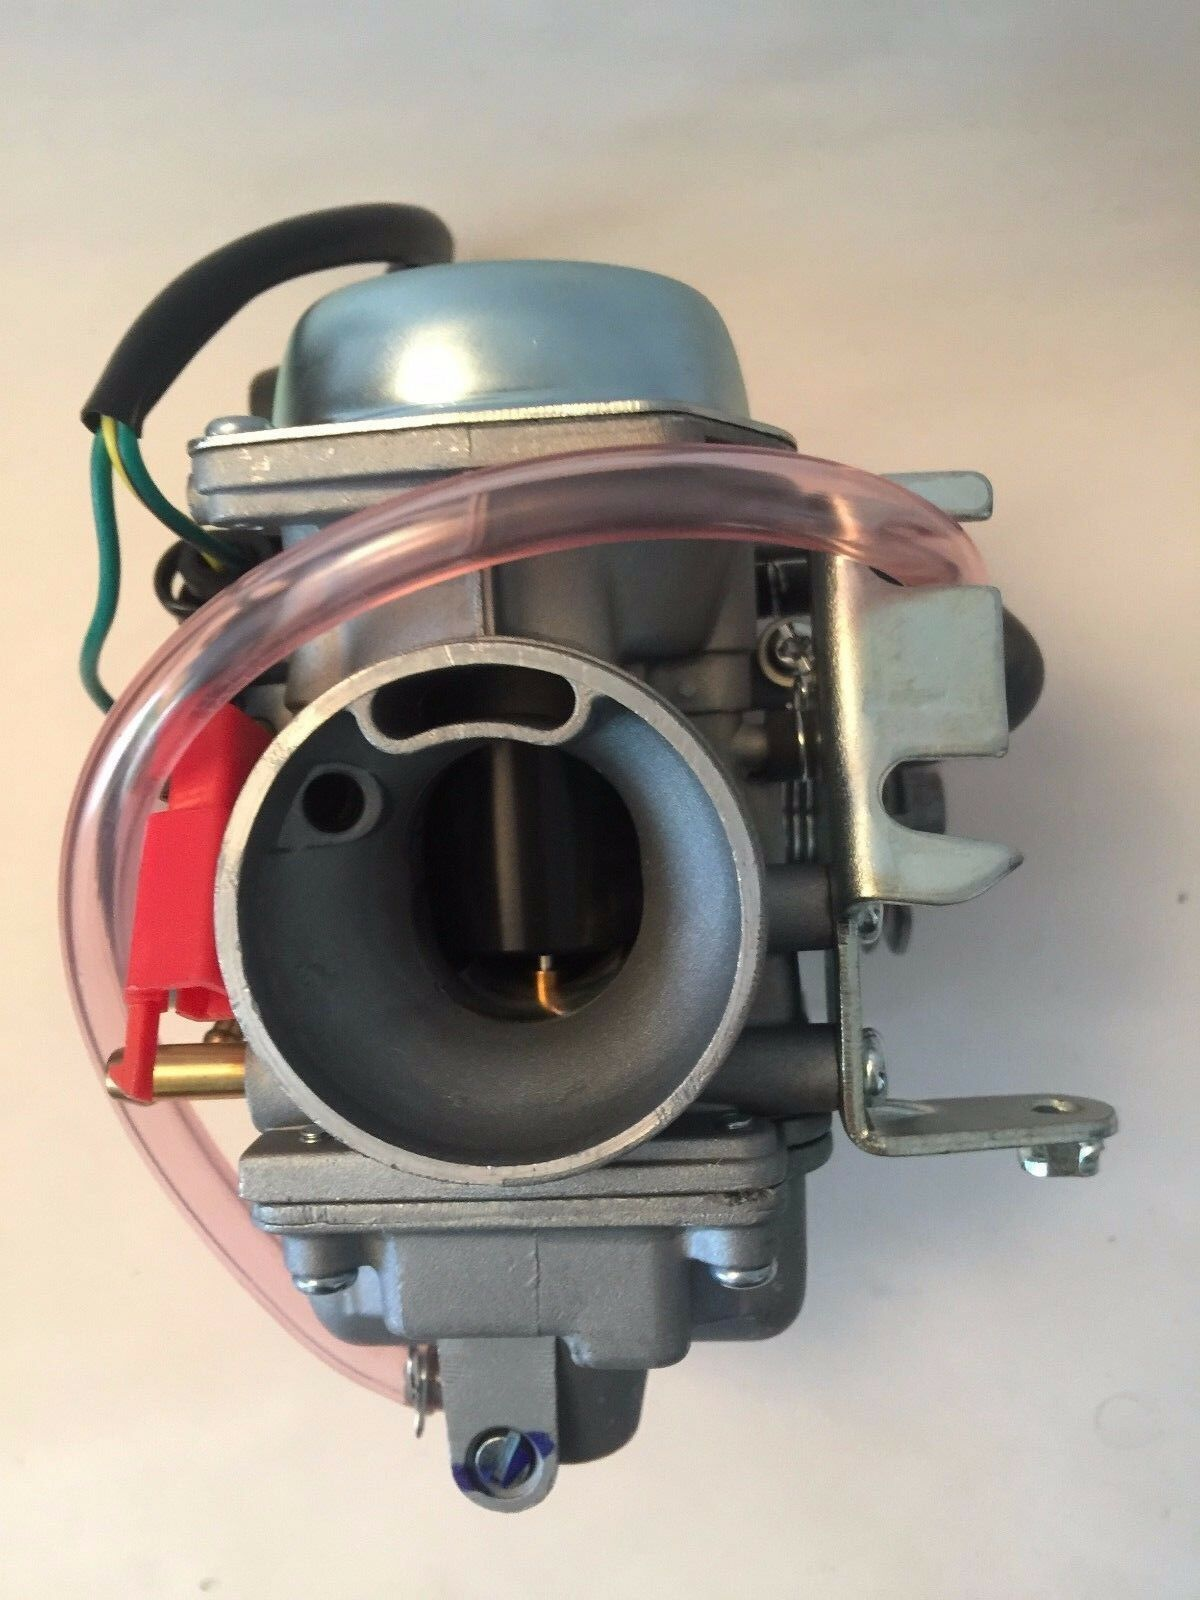 Carburettor Gy6 250cc 30mm Moped Scooter Go Kart Carter Jcl Kinroad Roketa Wiring Harness Kf 1 Of 9free Shipping See More